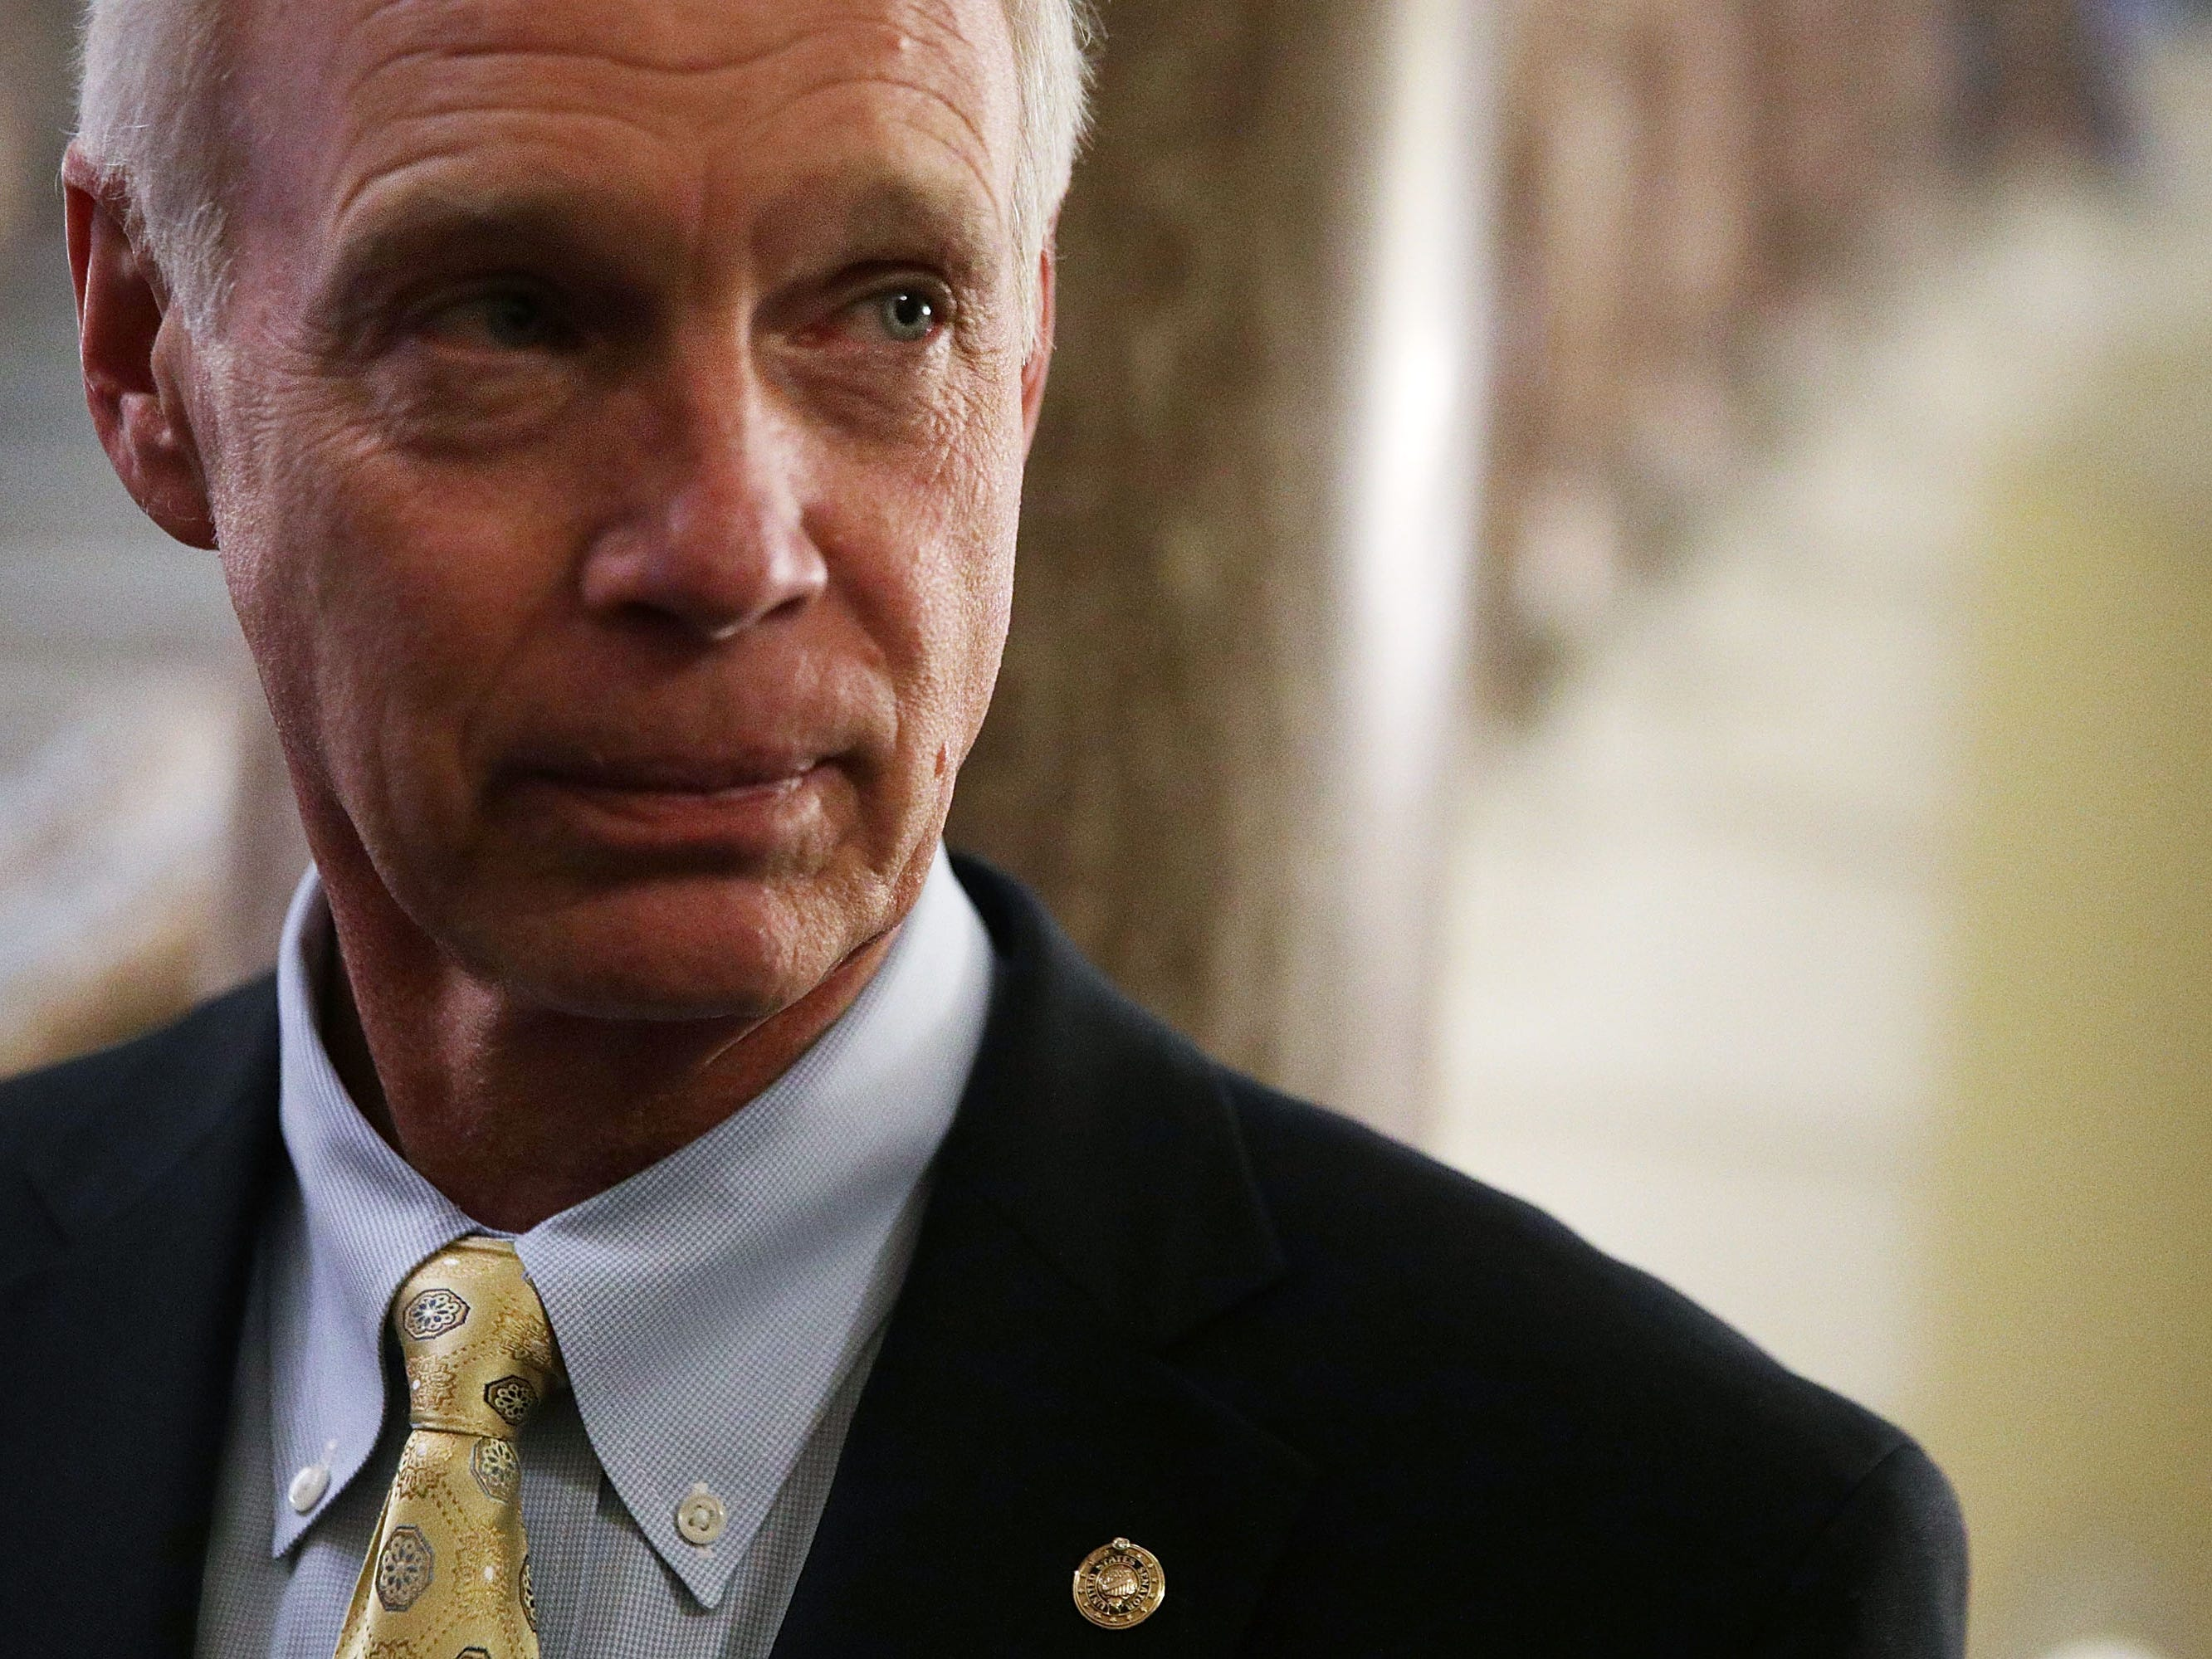 Sen. Ron Johnson (R-WI) listens to a question from a member of the press at the Capitol.